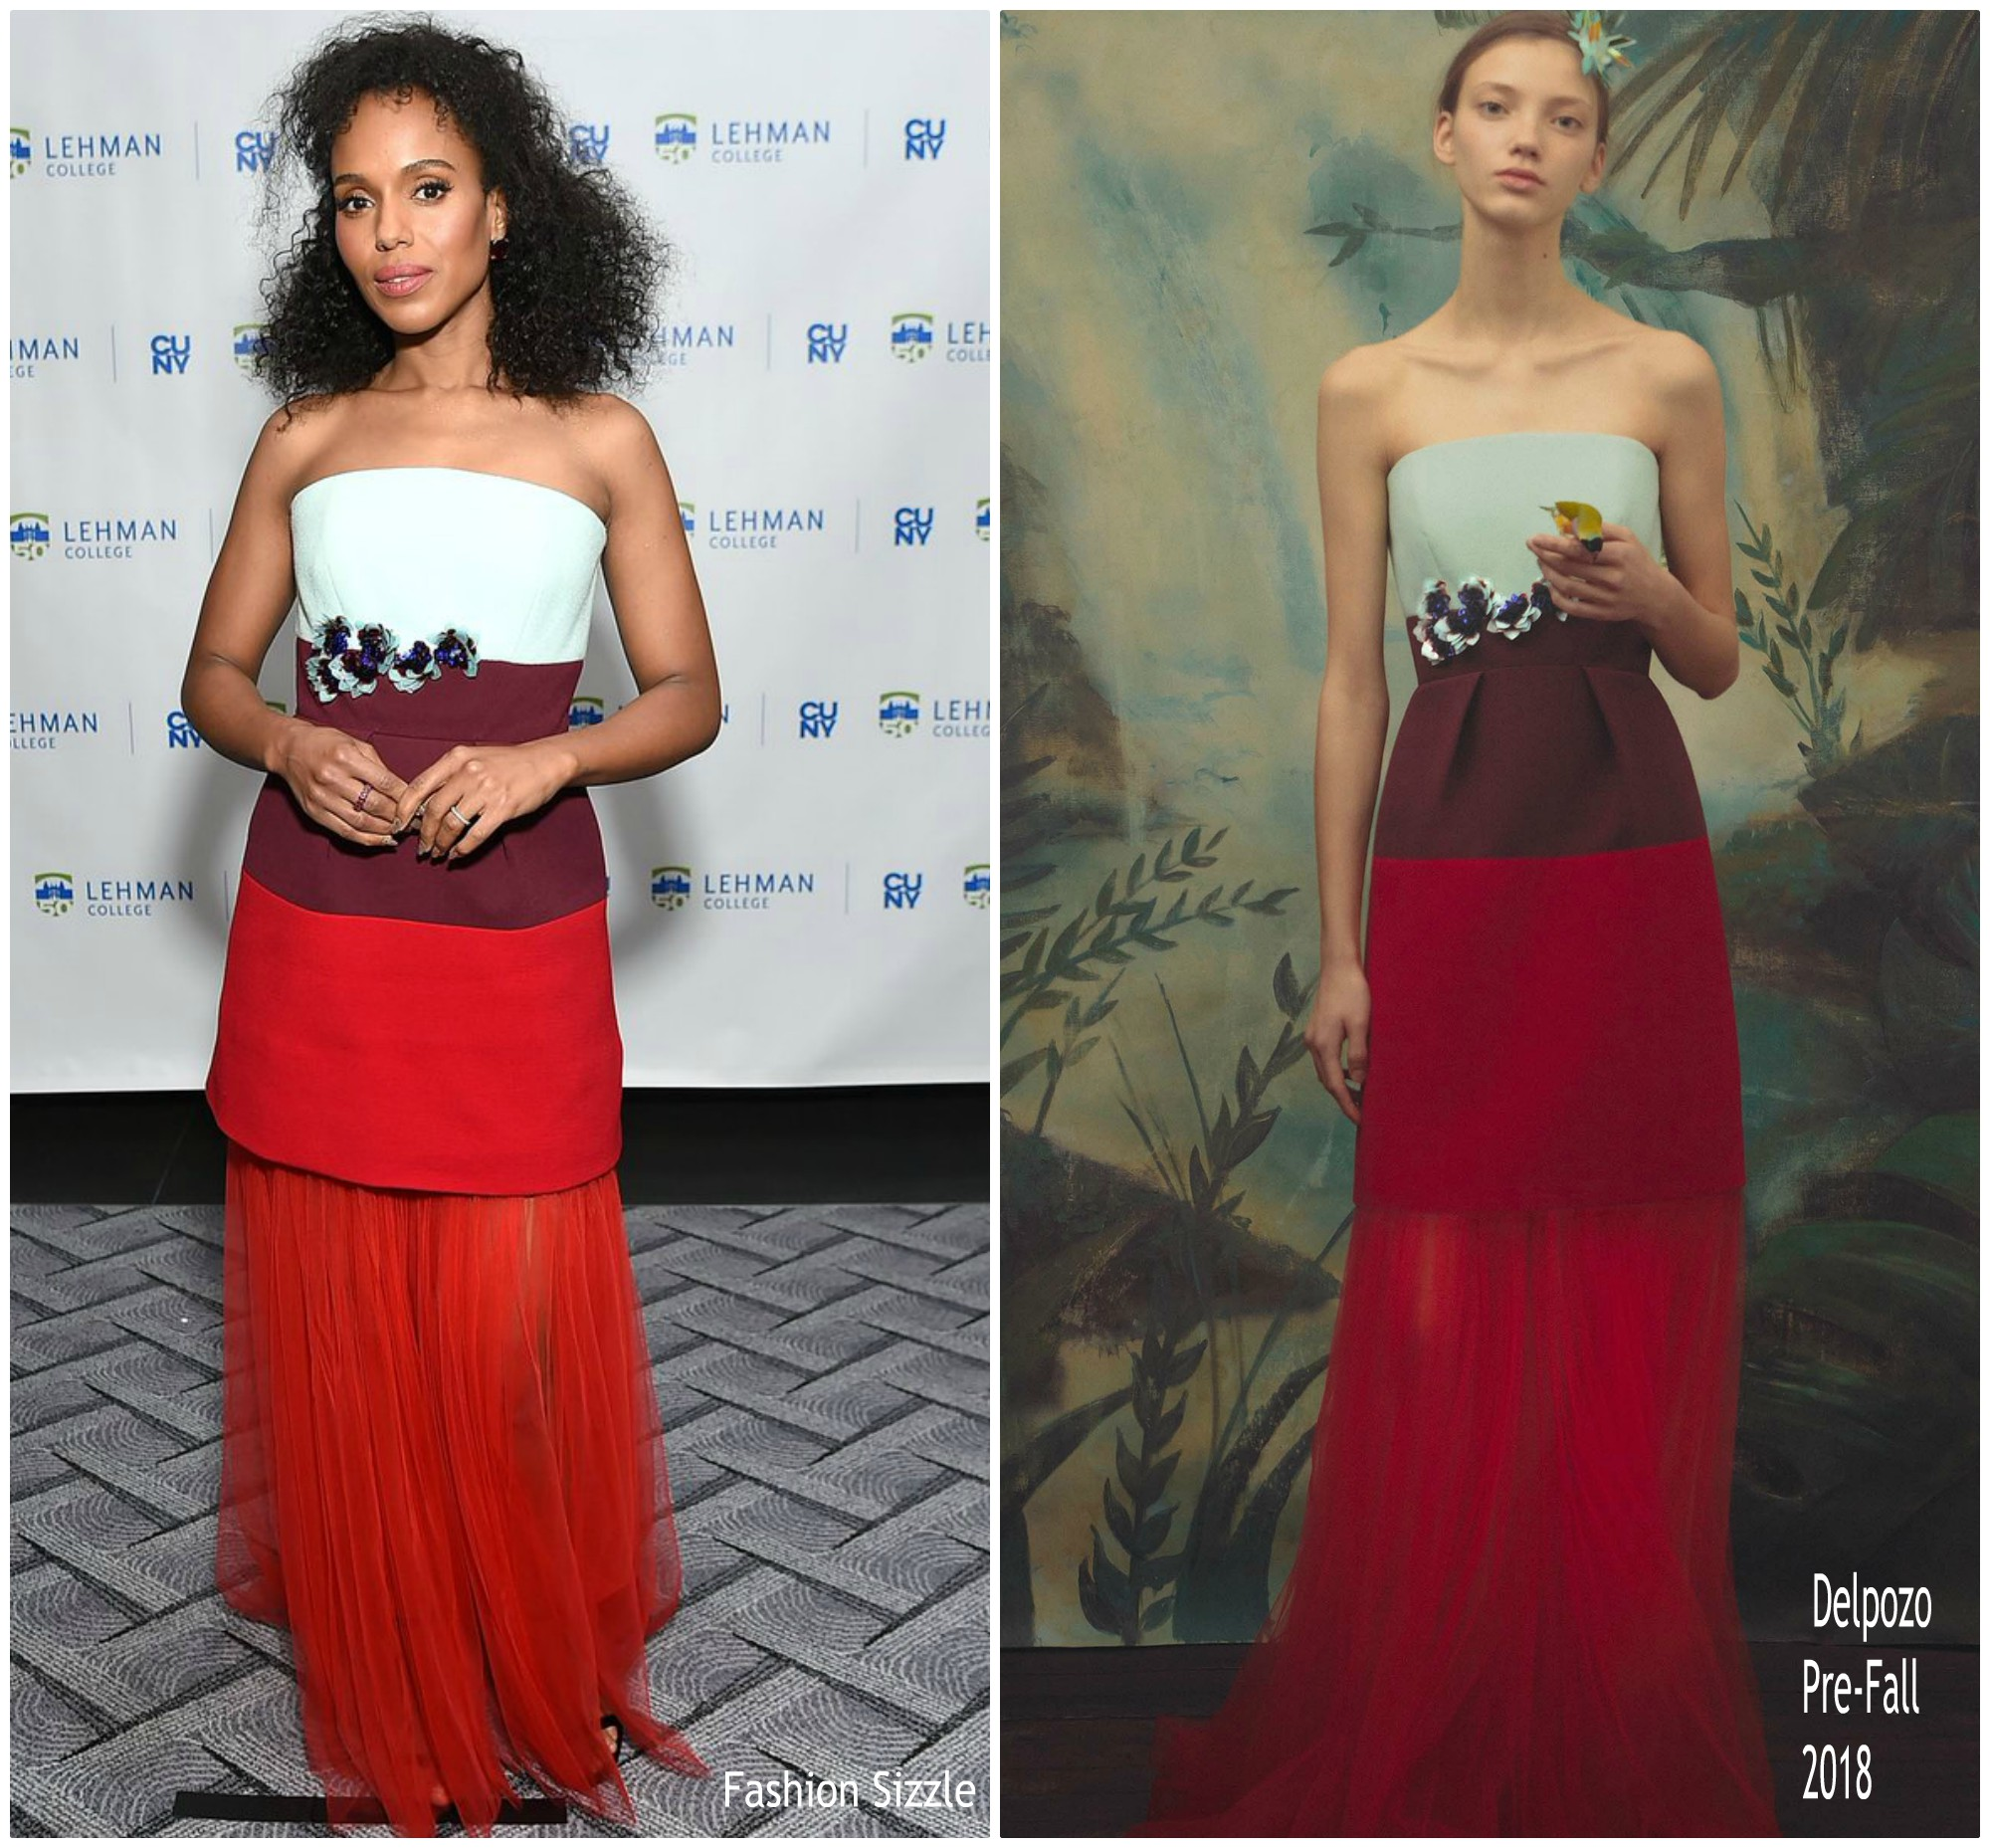 kerry-washington-in-delpozo-lehman-college-5oth-anniversary-celebration-leadership-awards-dinner